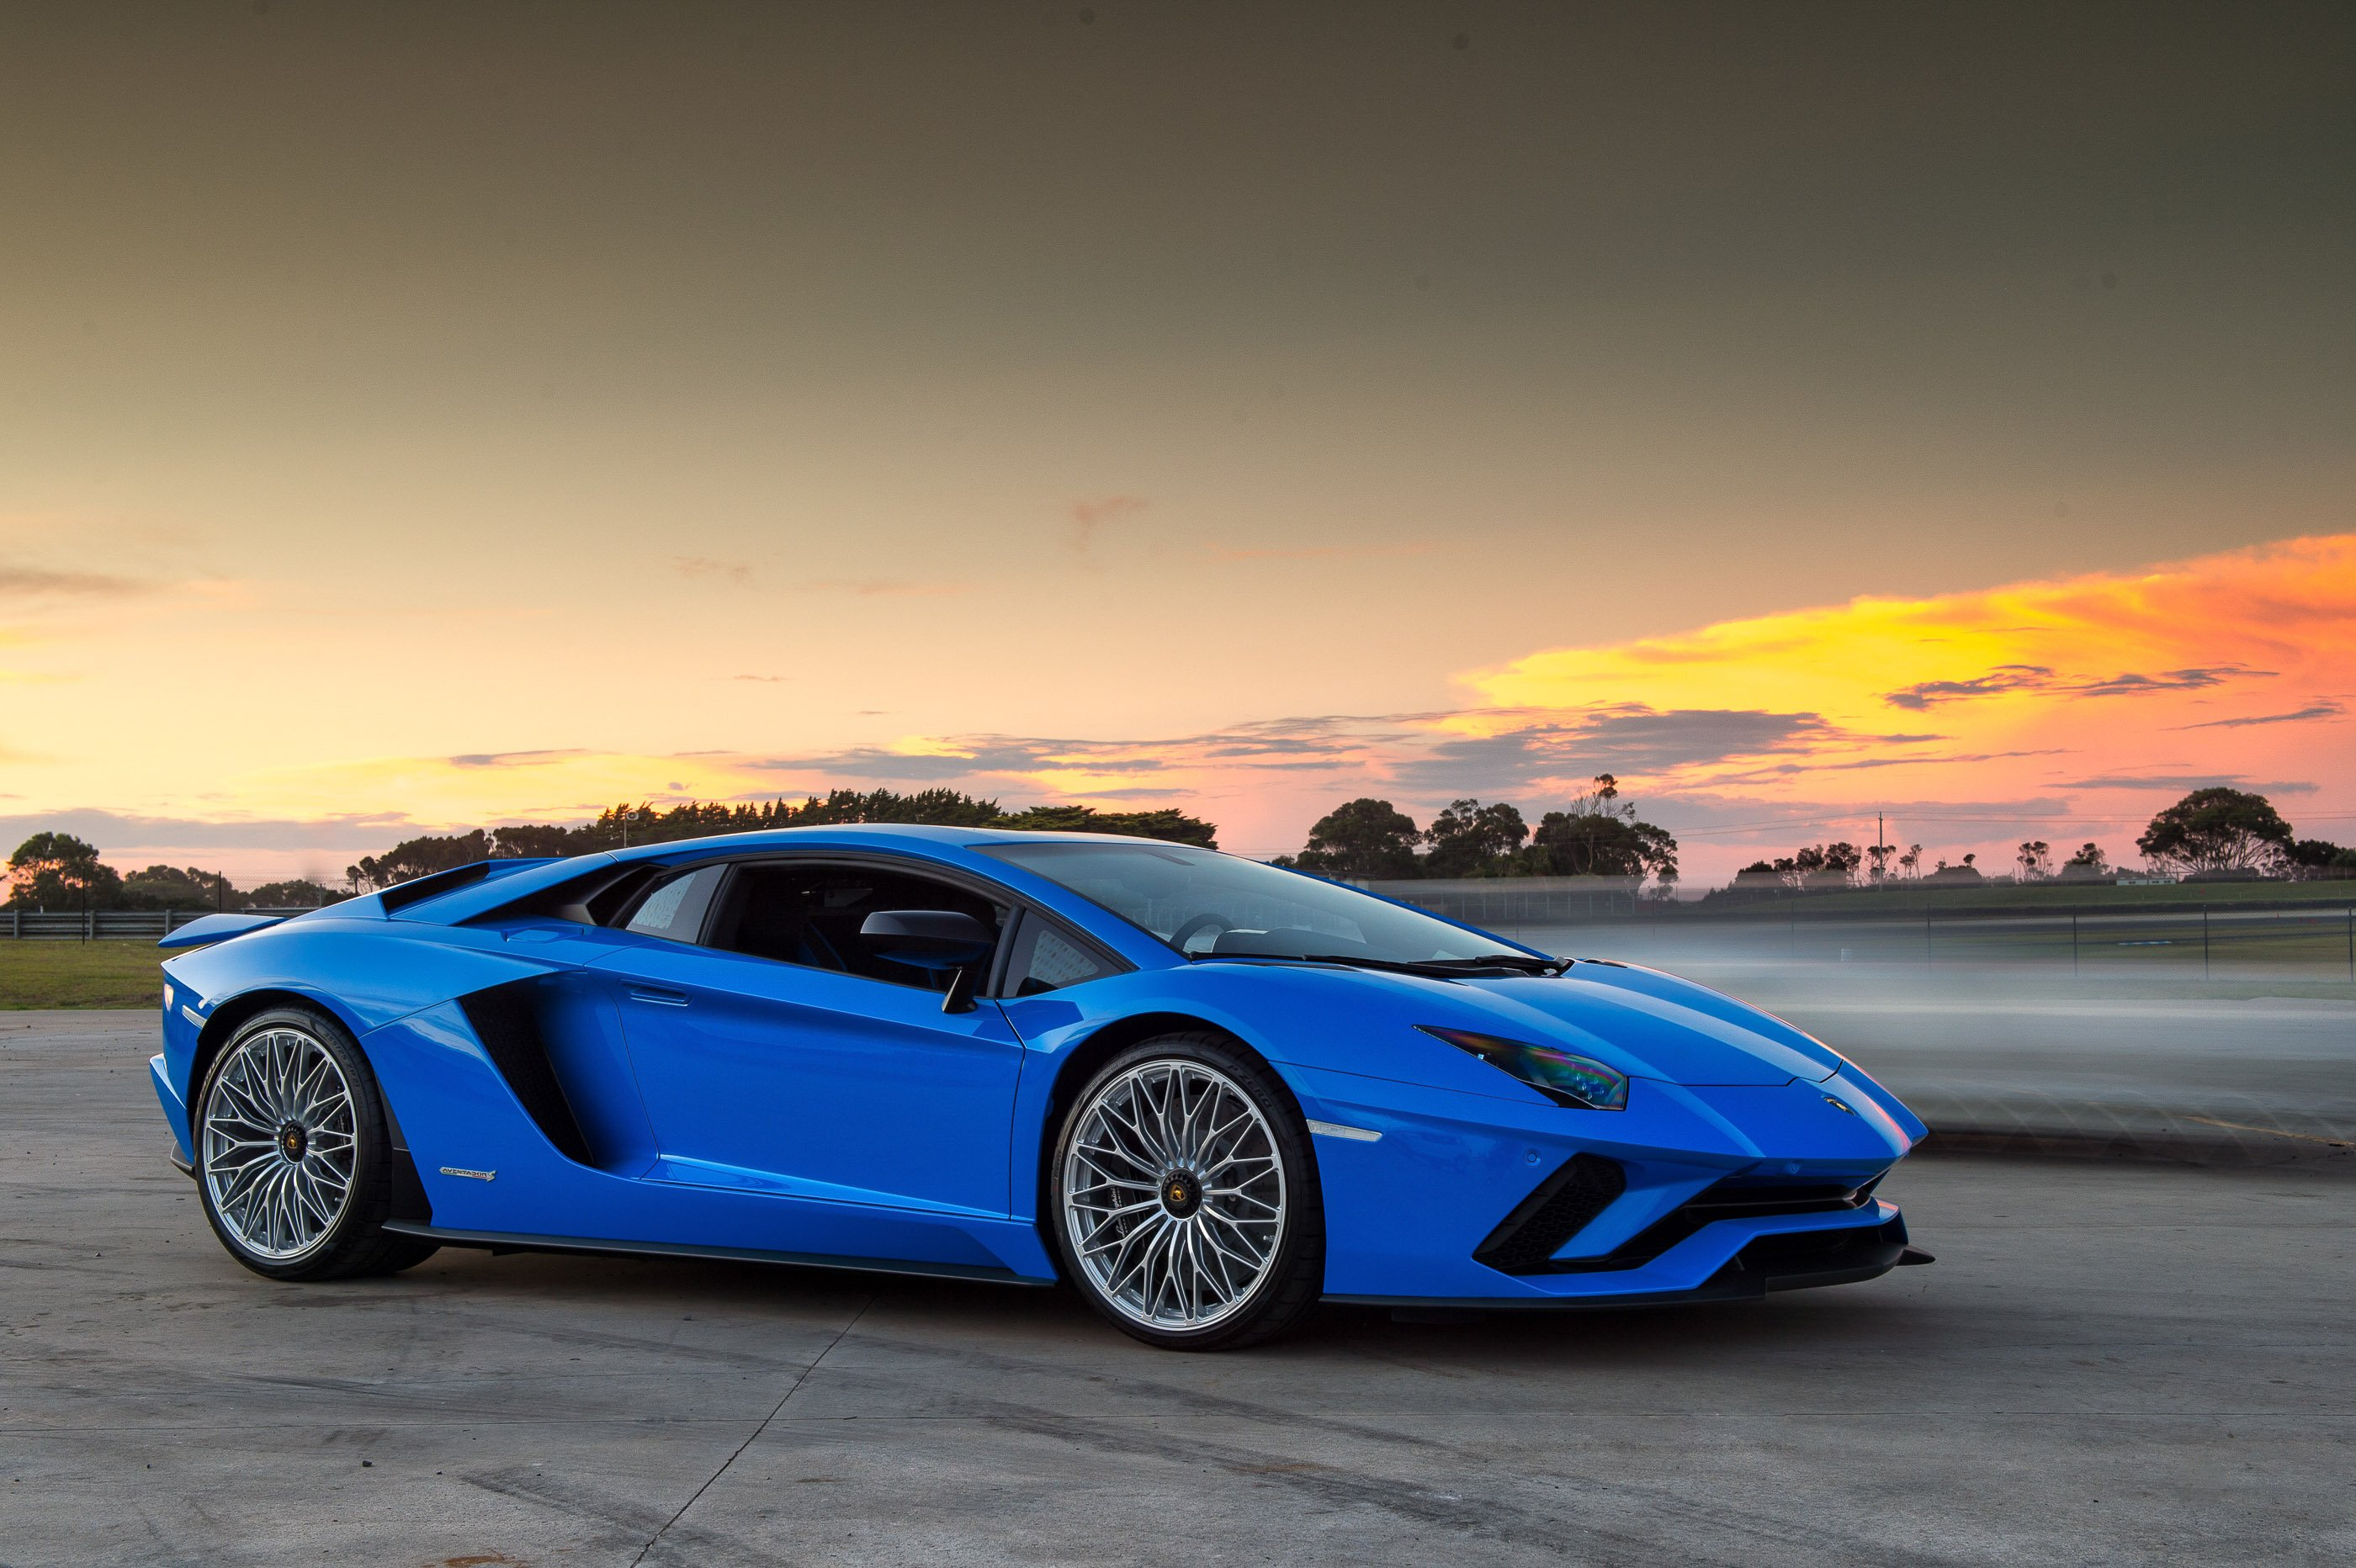 2017 Lamborghini Aventador S Review Photos Caradvice